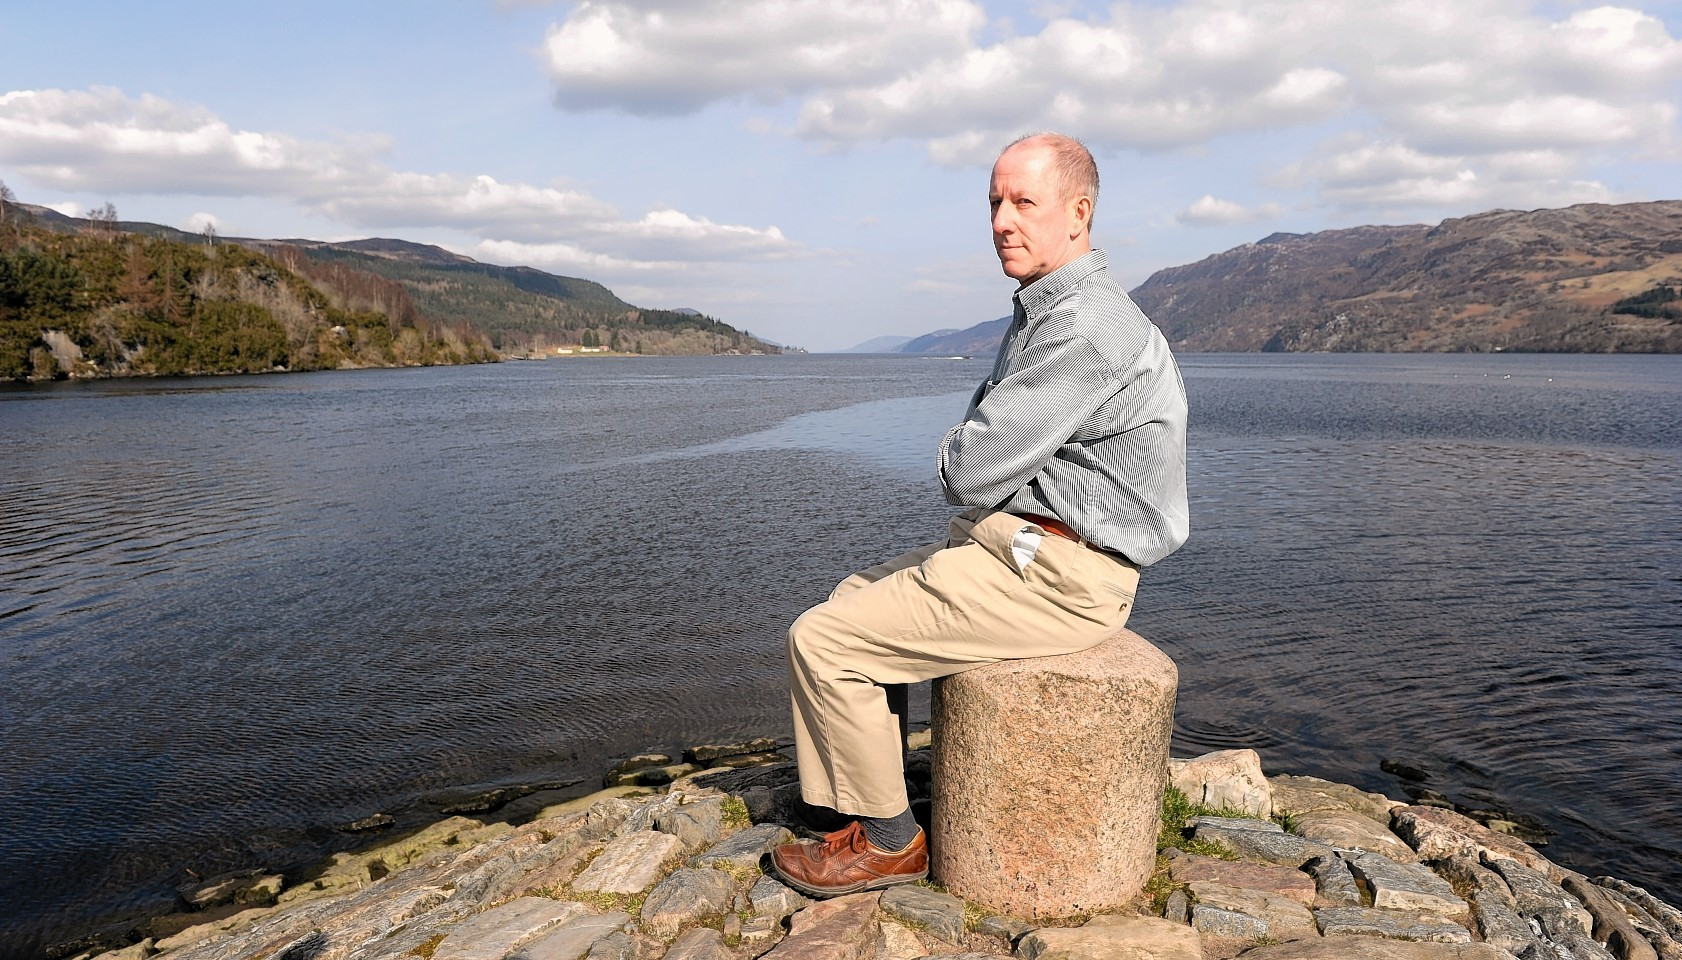 Gerry Worth concerned that Loch Ness will be surrounded by over five hundred wind turbines .